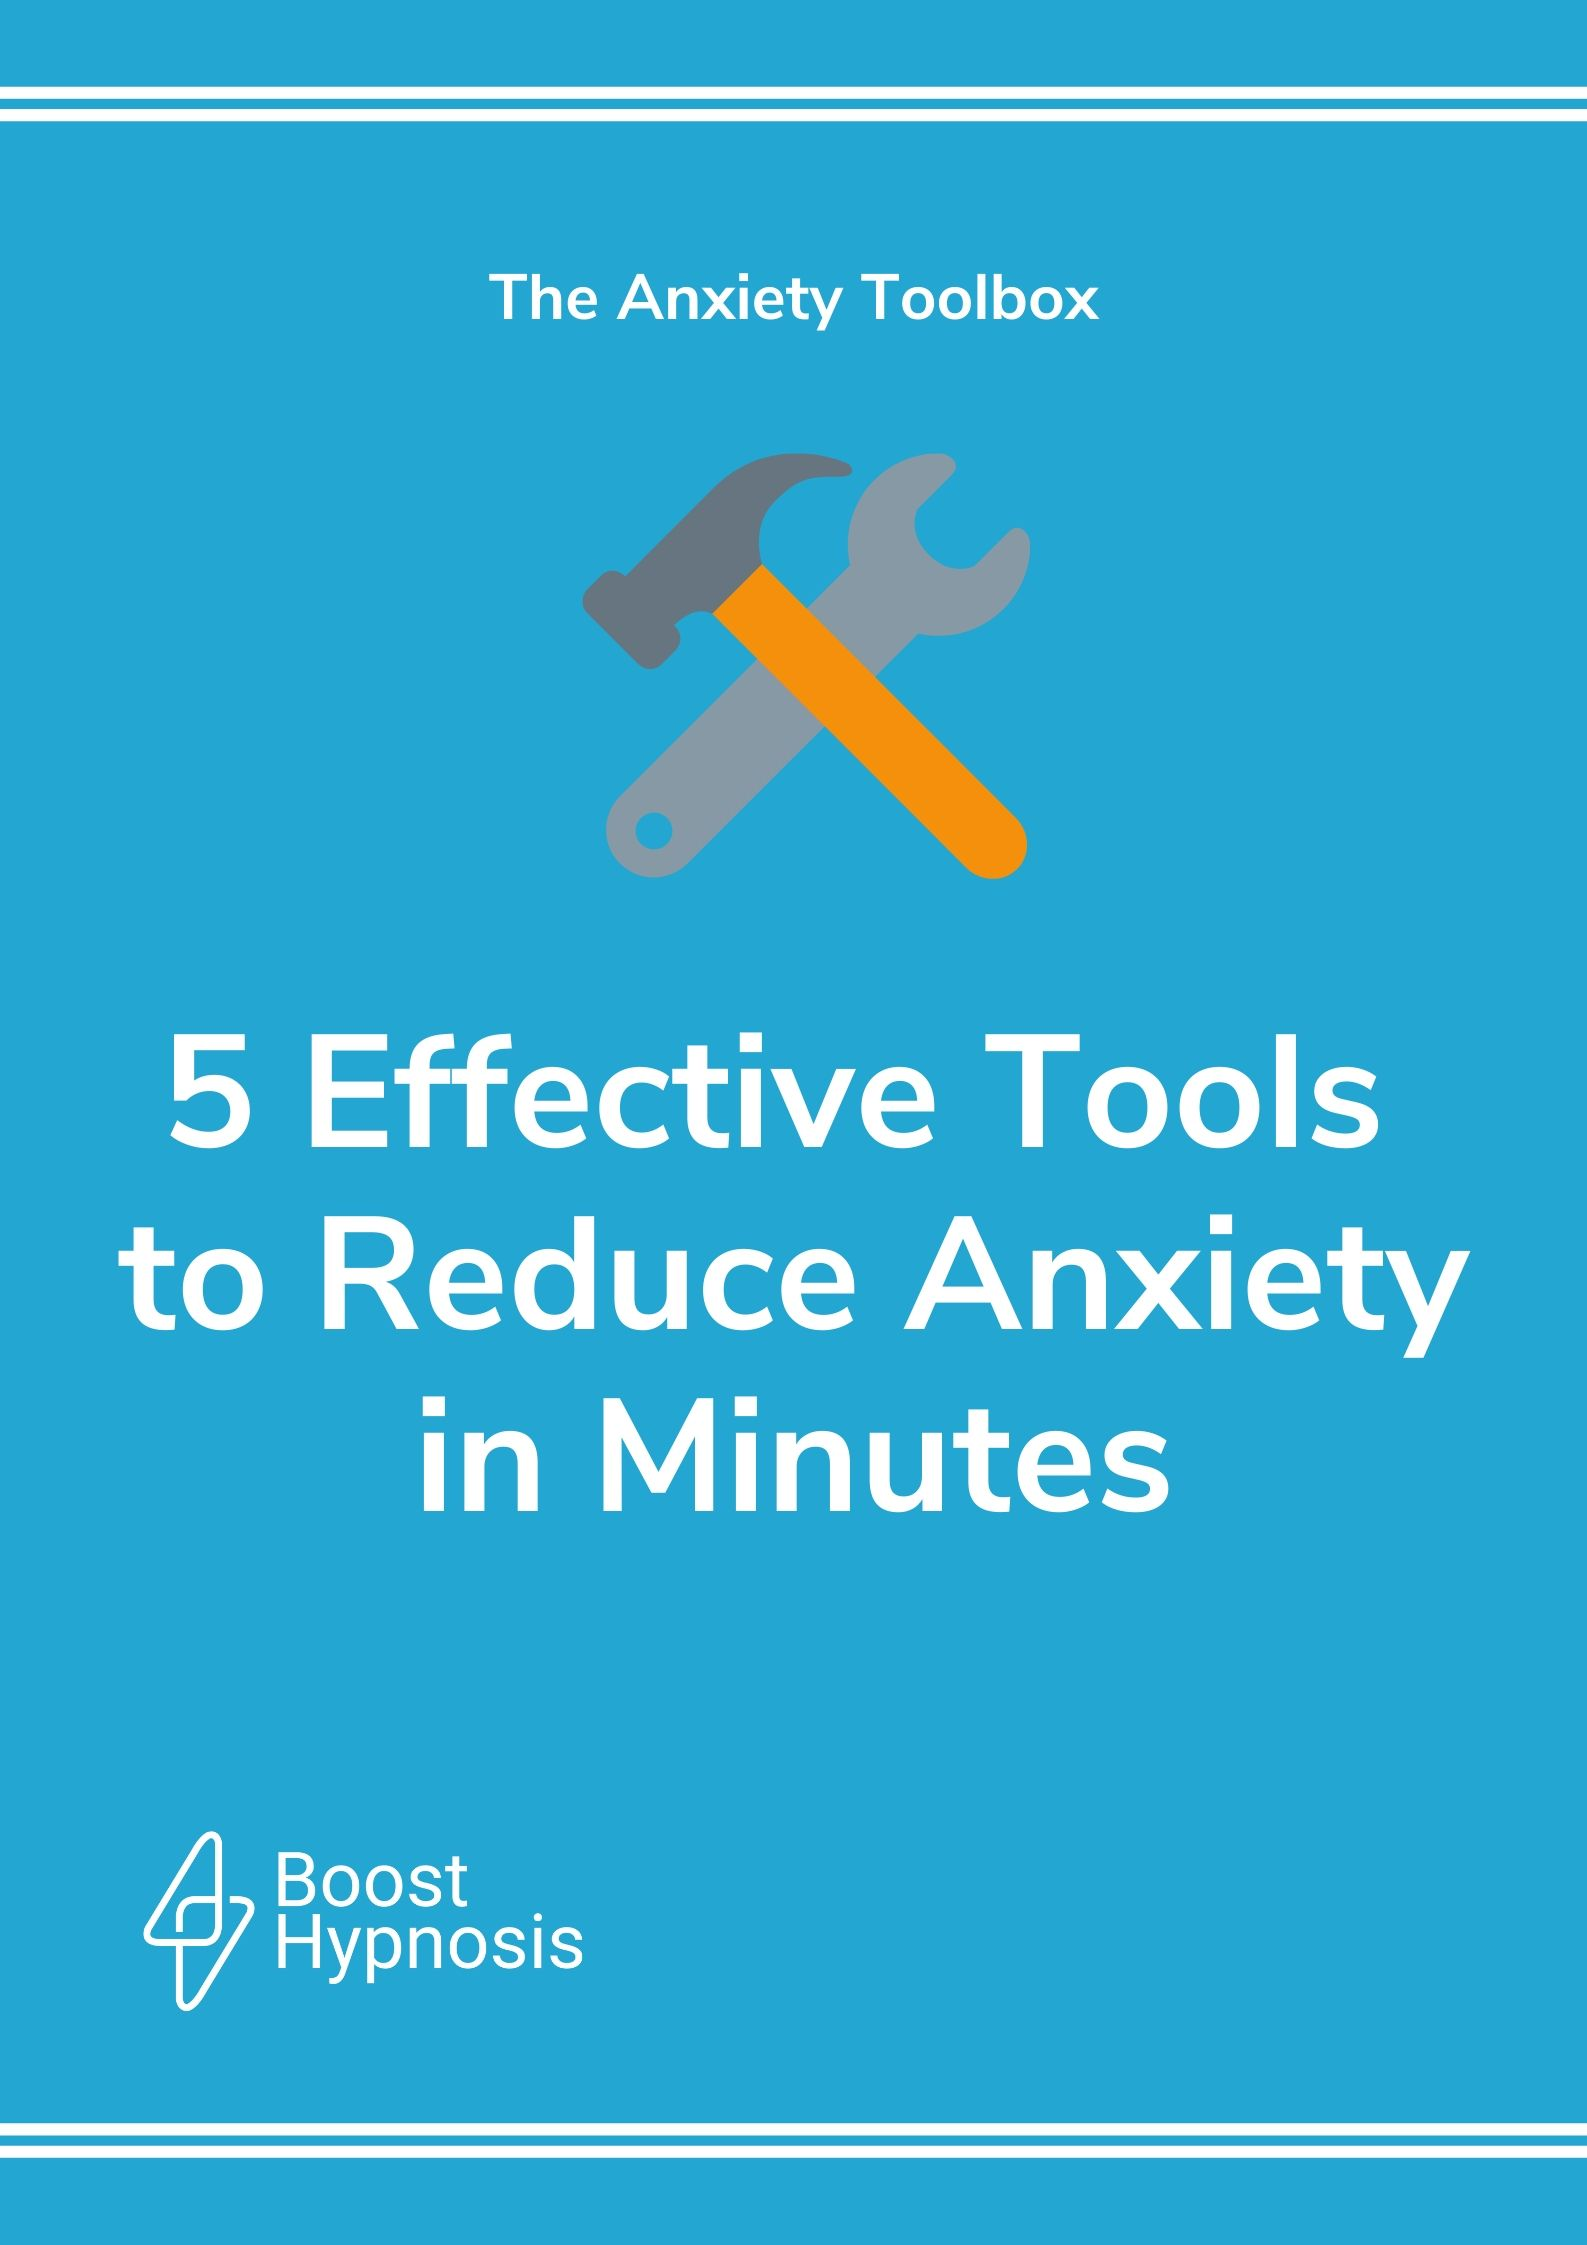 Anxiety Toolbox Guide Image